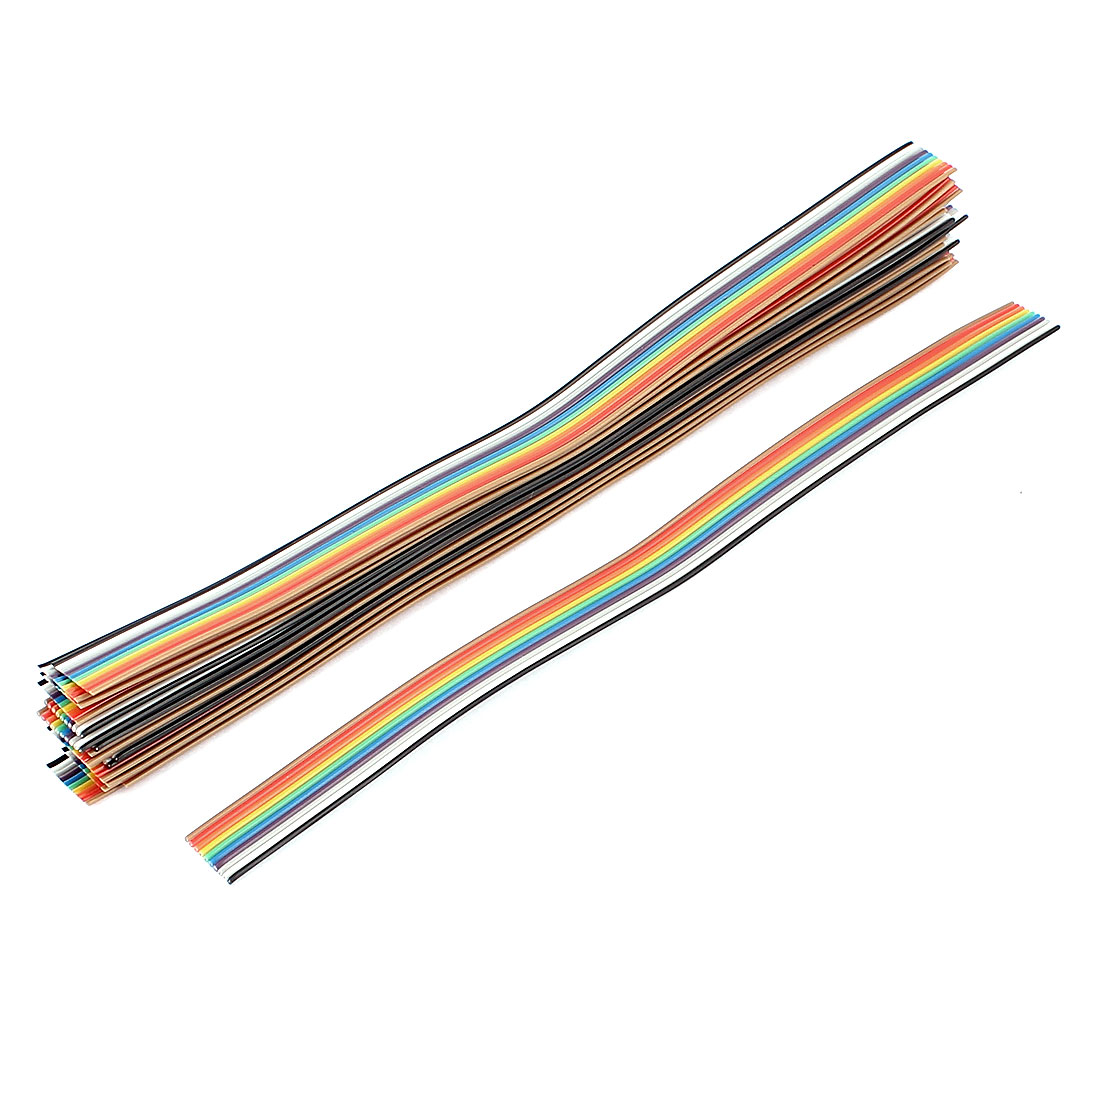 20 Pcs 200mm Long 10-Pin Rainbow Color Flat Ribbon Cable IDC Wire